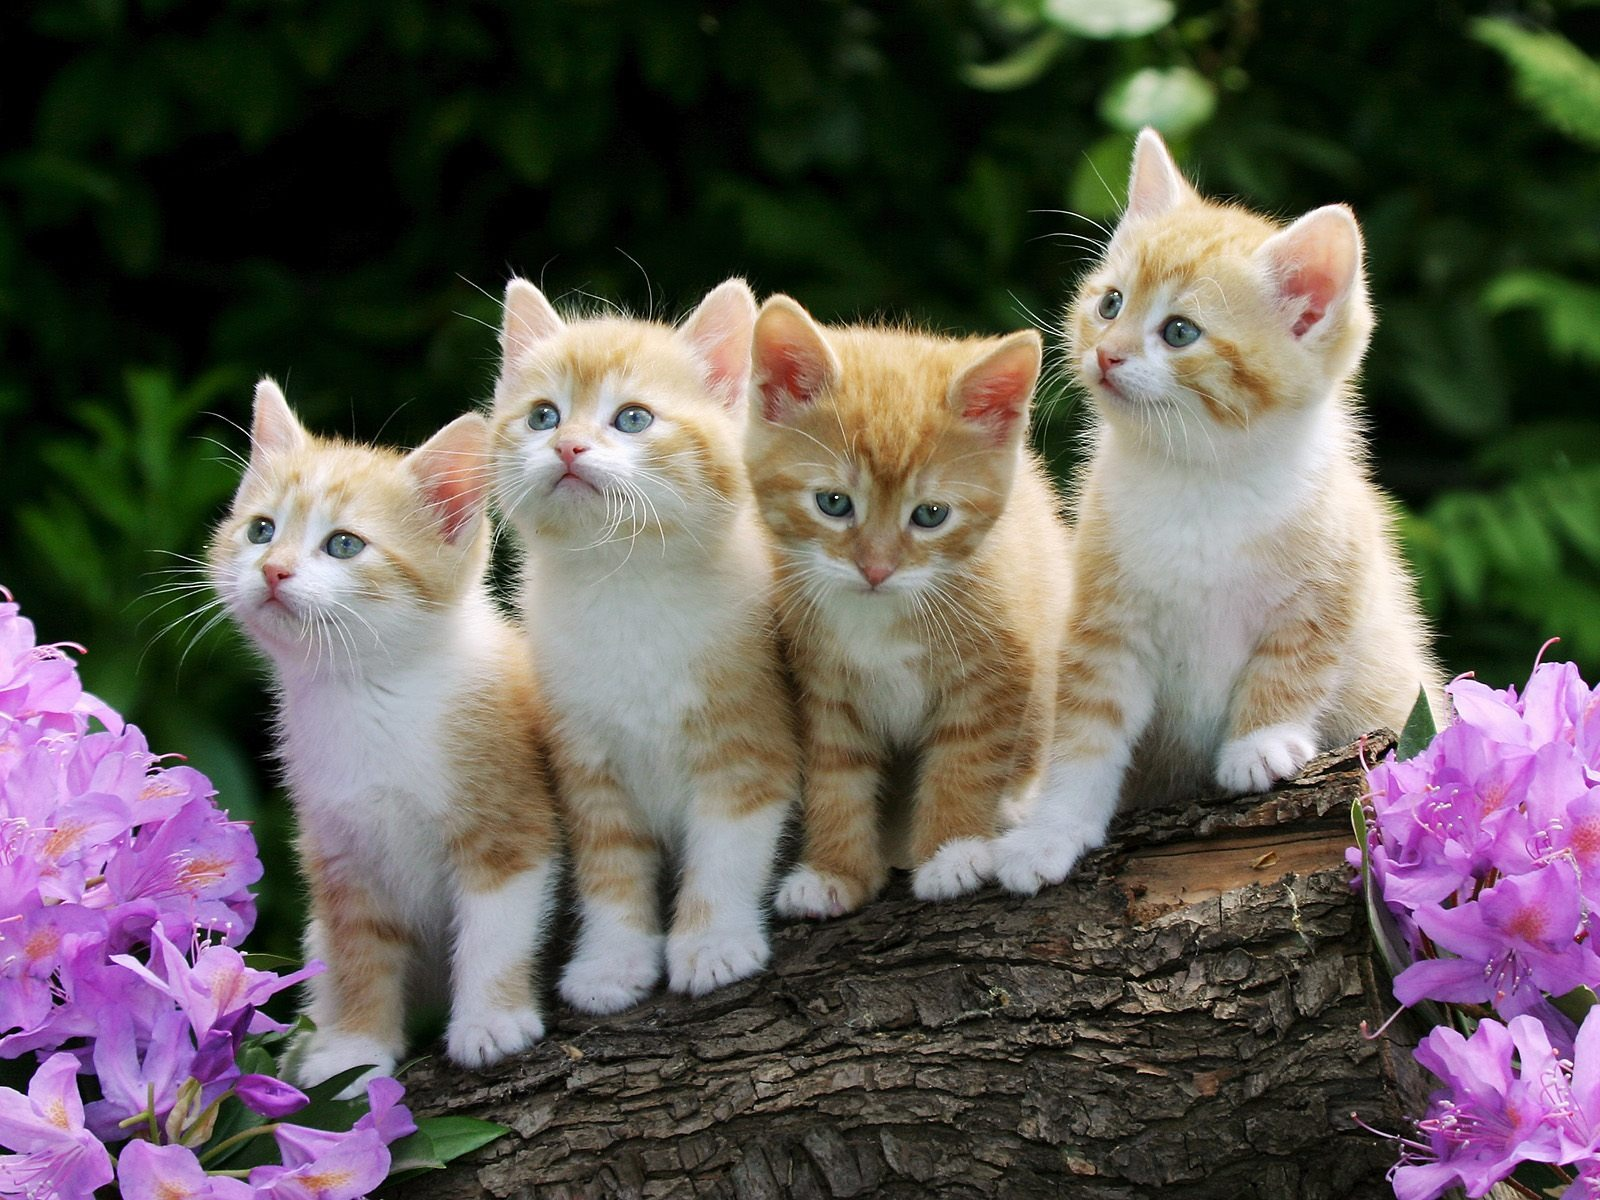 Cute kitty Wallpaper Cats Animals Wallpapers in format for